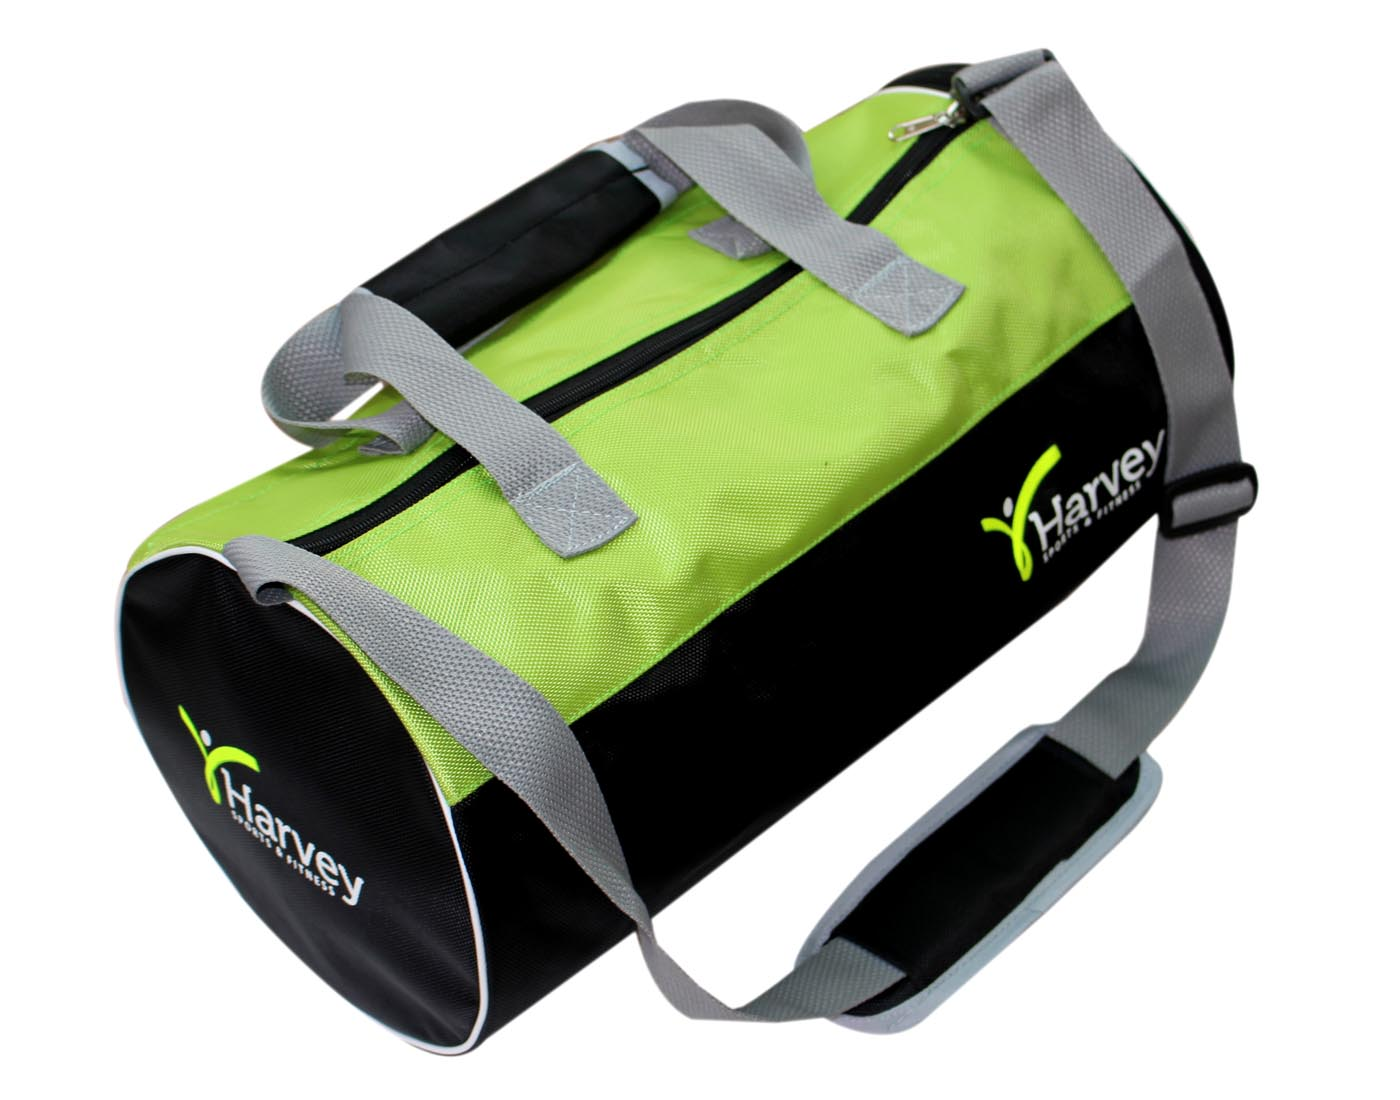 Gym Bag   Smart Waterproof Gym Bag Round Sports Duffel Bag with Shoe Compartment Travel Sports Bag HARVEY BLK GREEN